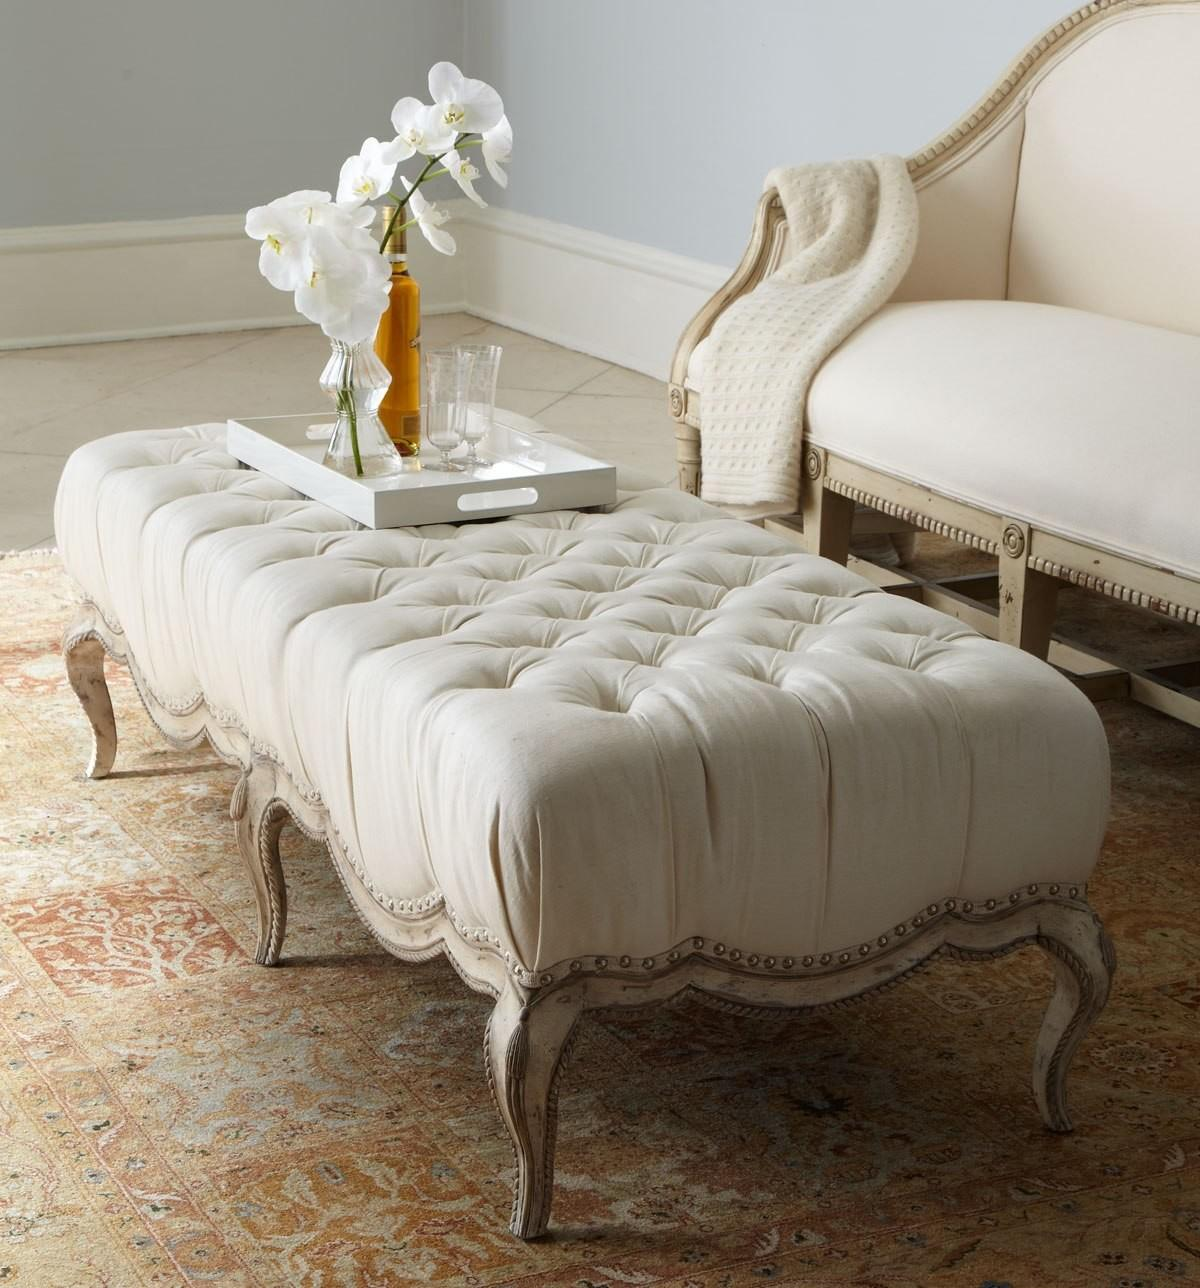 Plush Tufted Ottomans Add Comfort Functionality